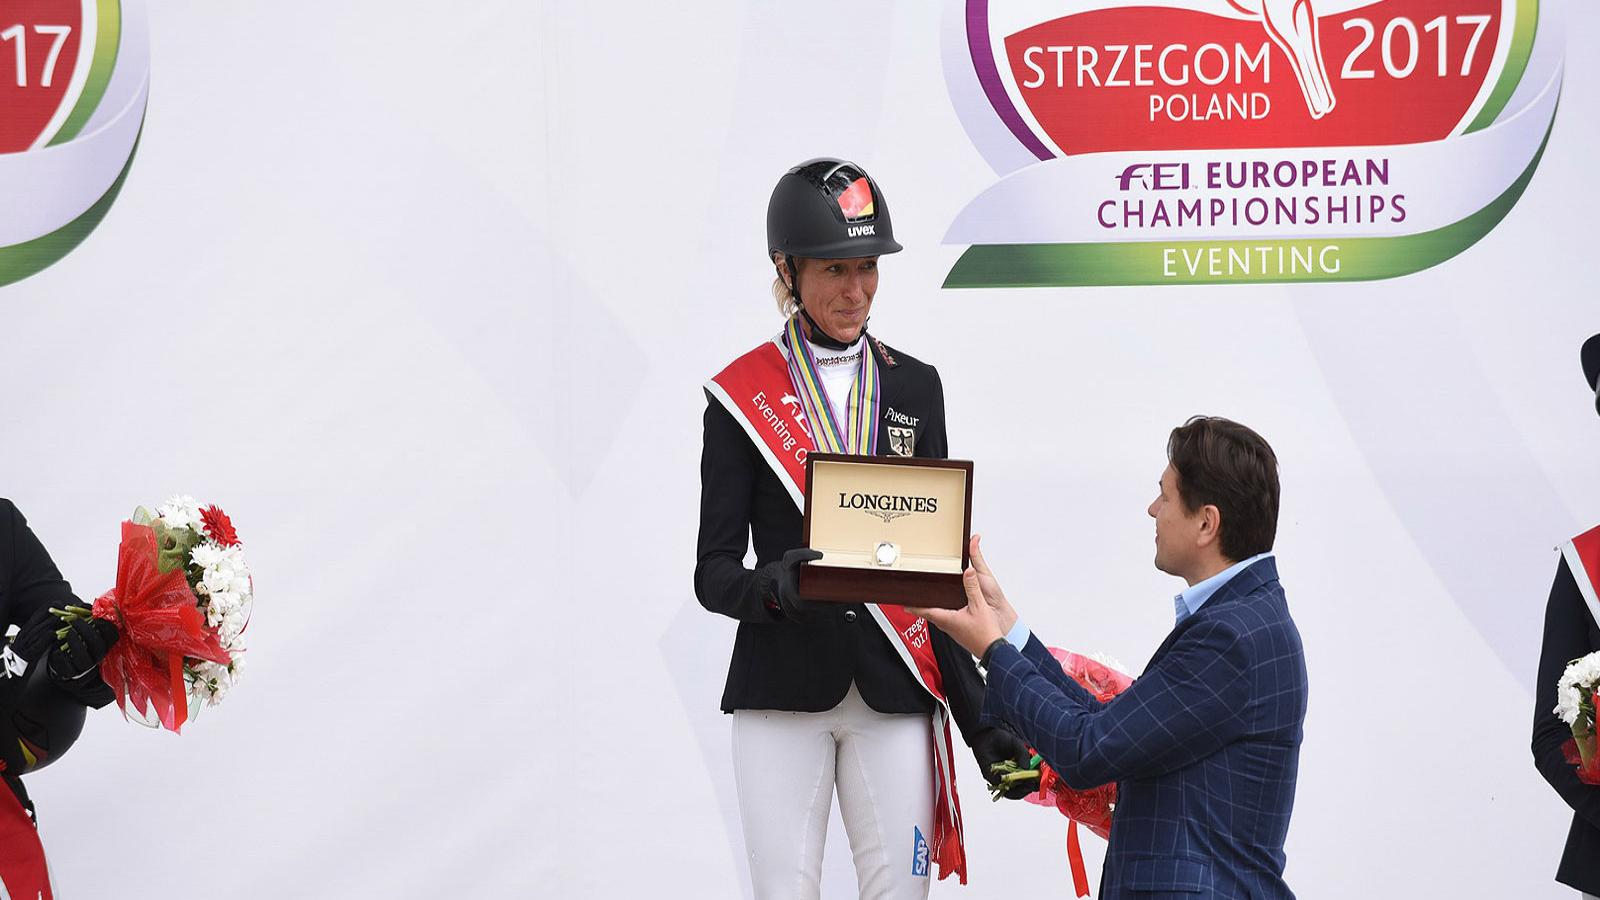 FEI European Eventing Championships; Strzegom; Eventing; 2017